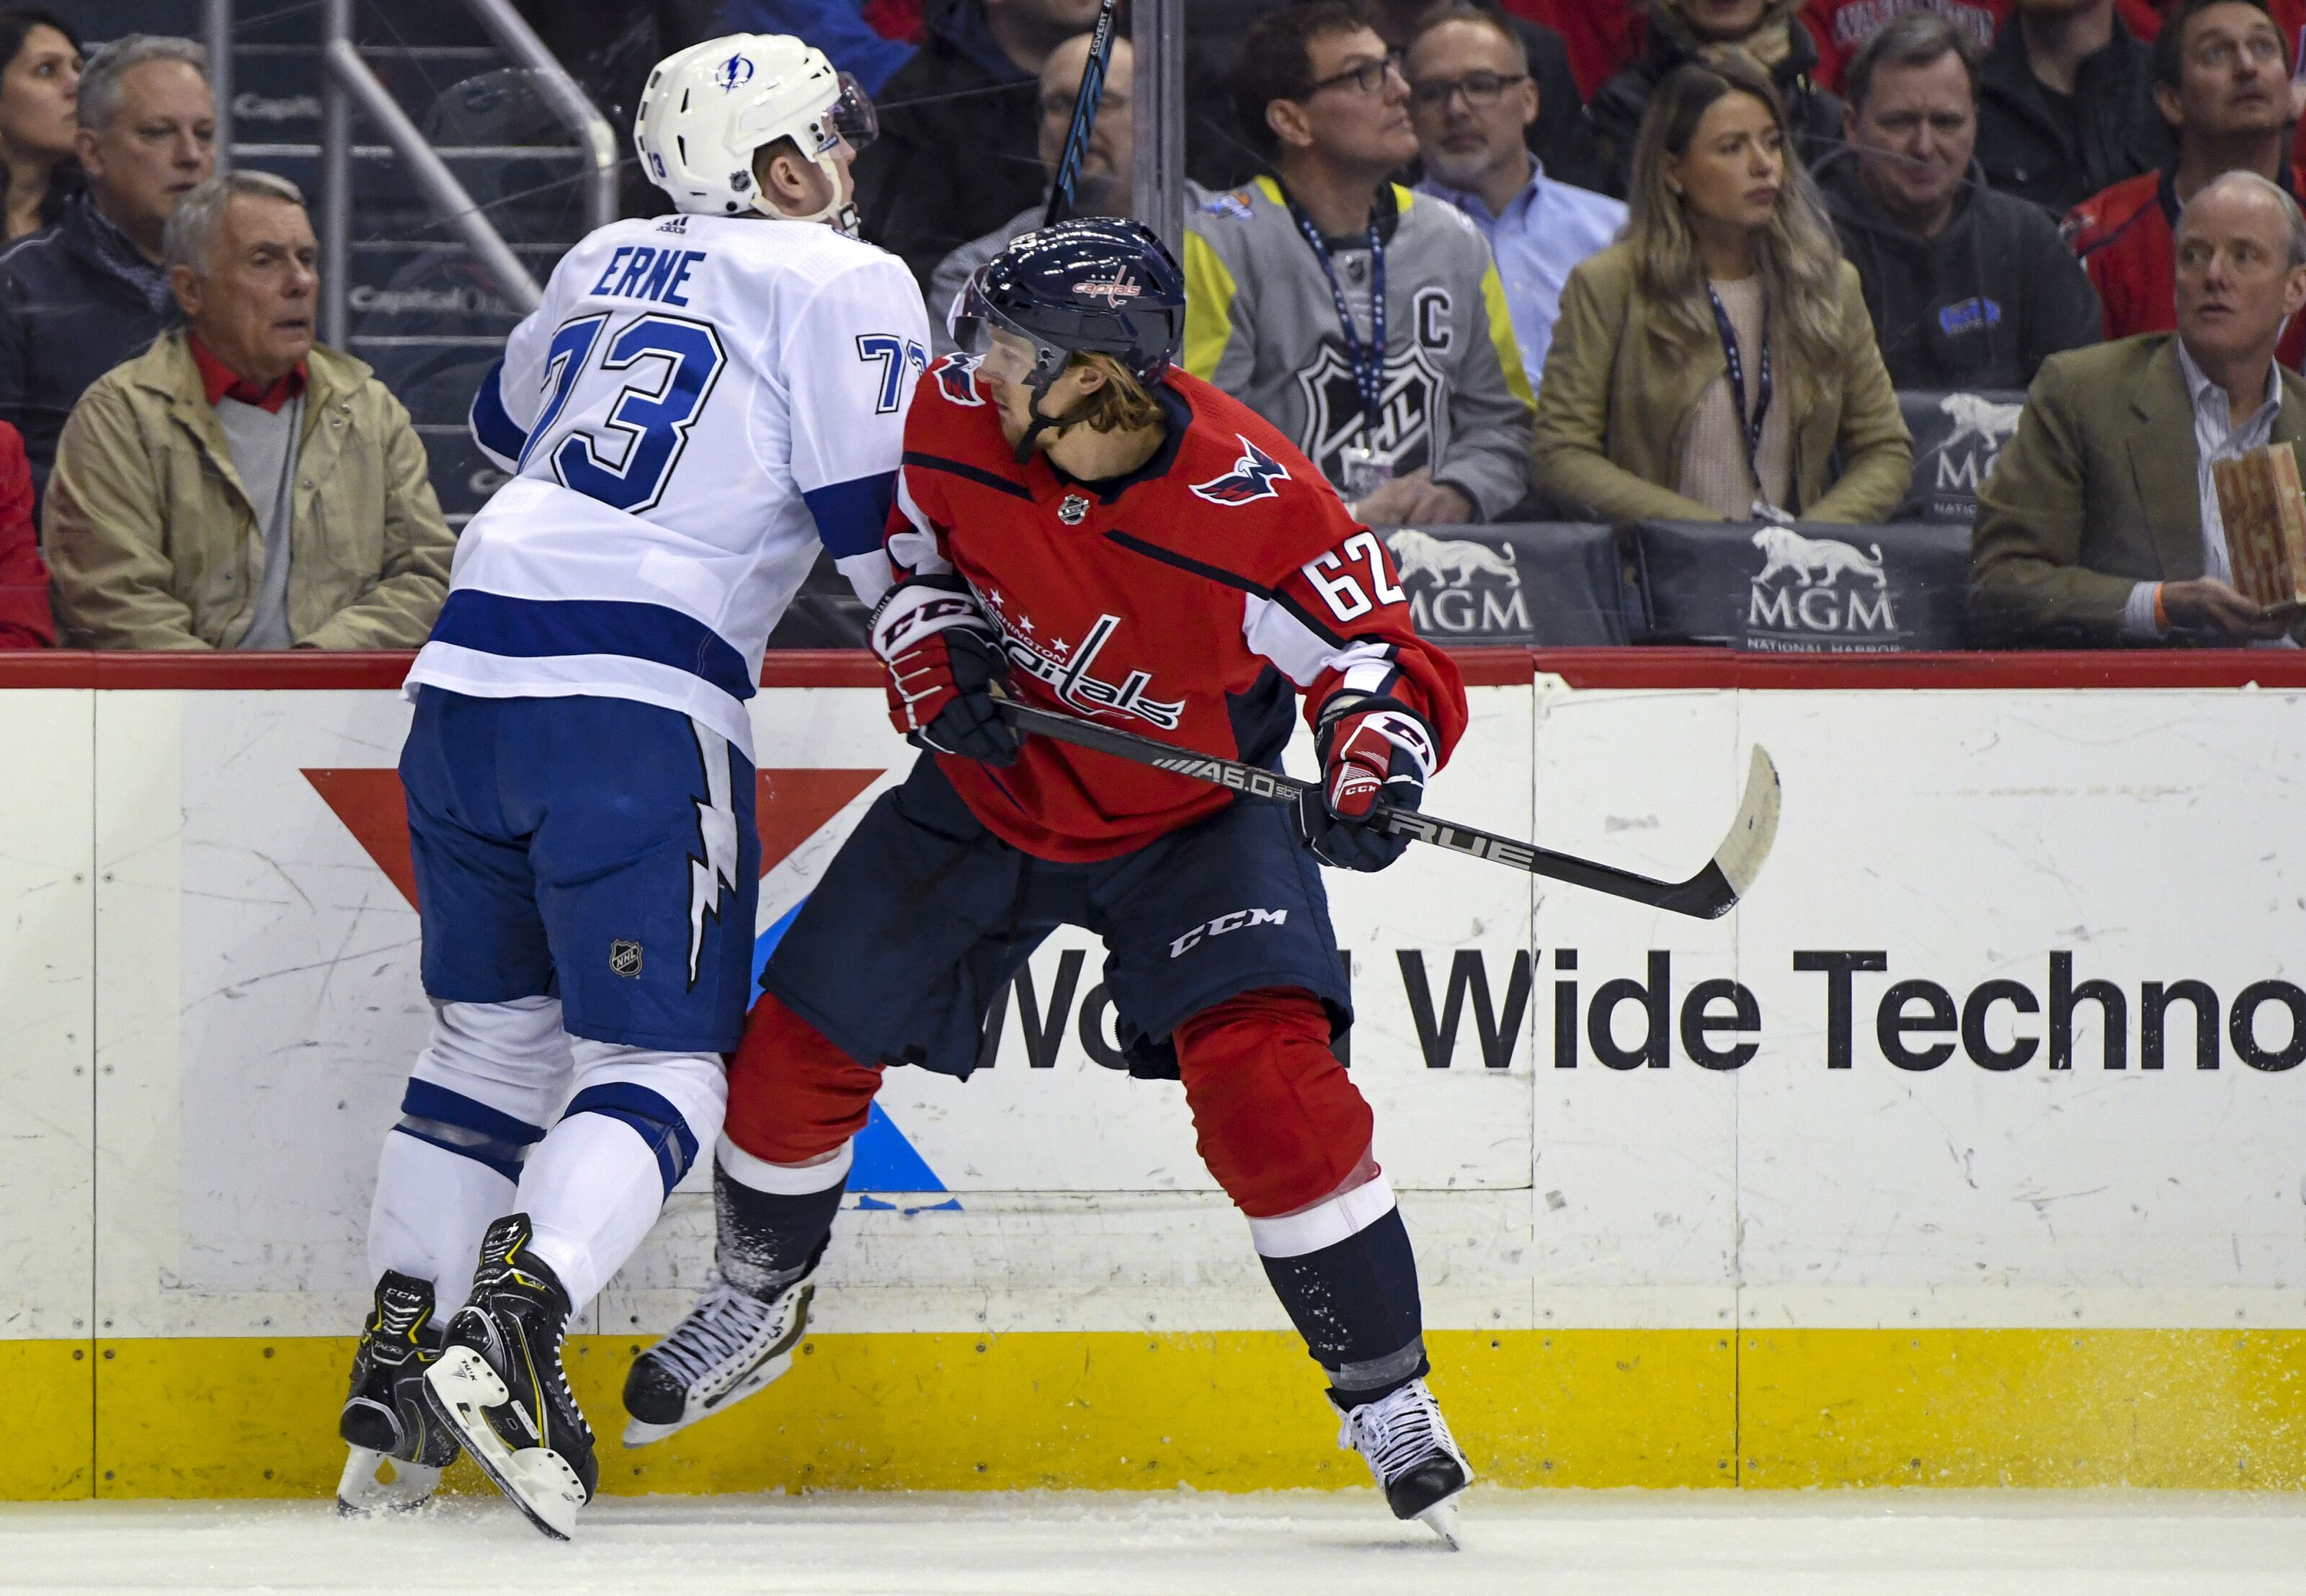 fce47efeb1c Washington Capitals and Tampa Bay Lightning Rivalry is Great for the Game